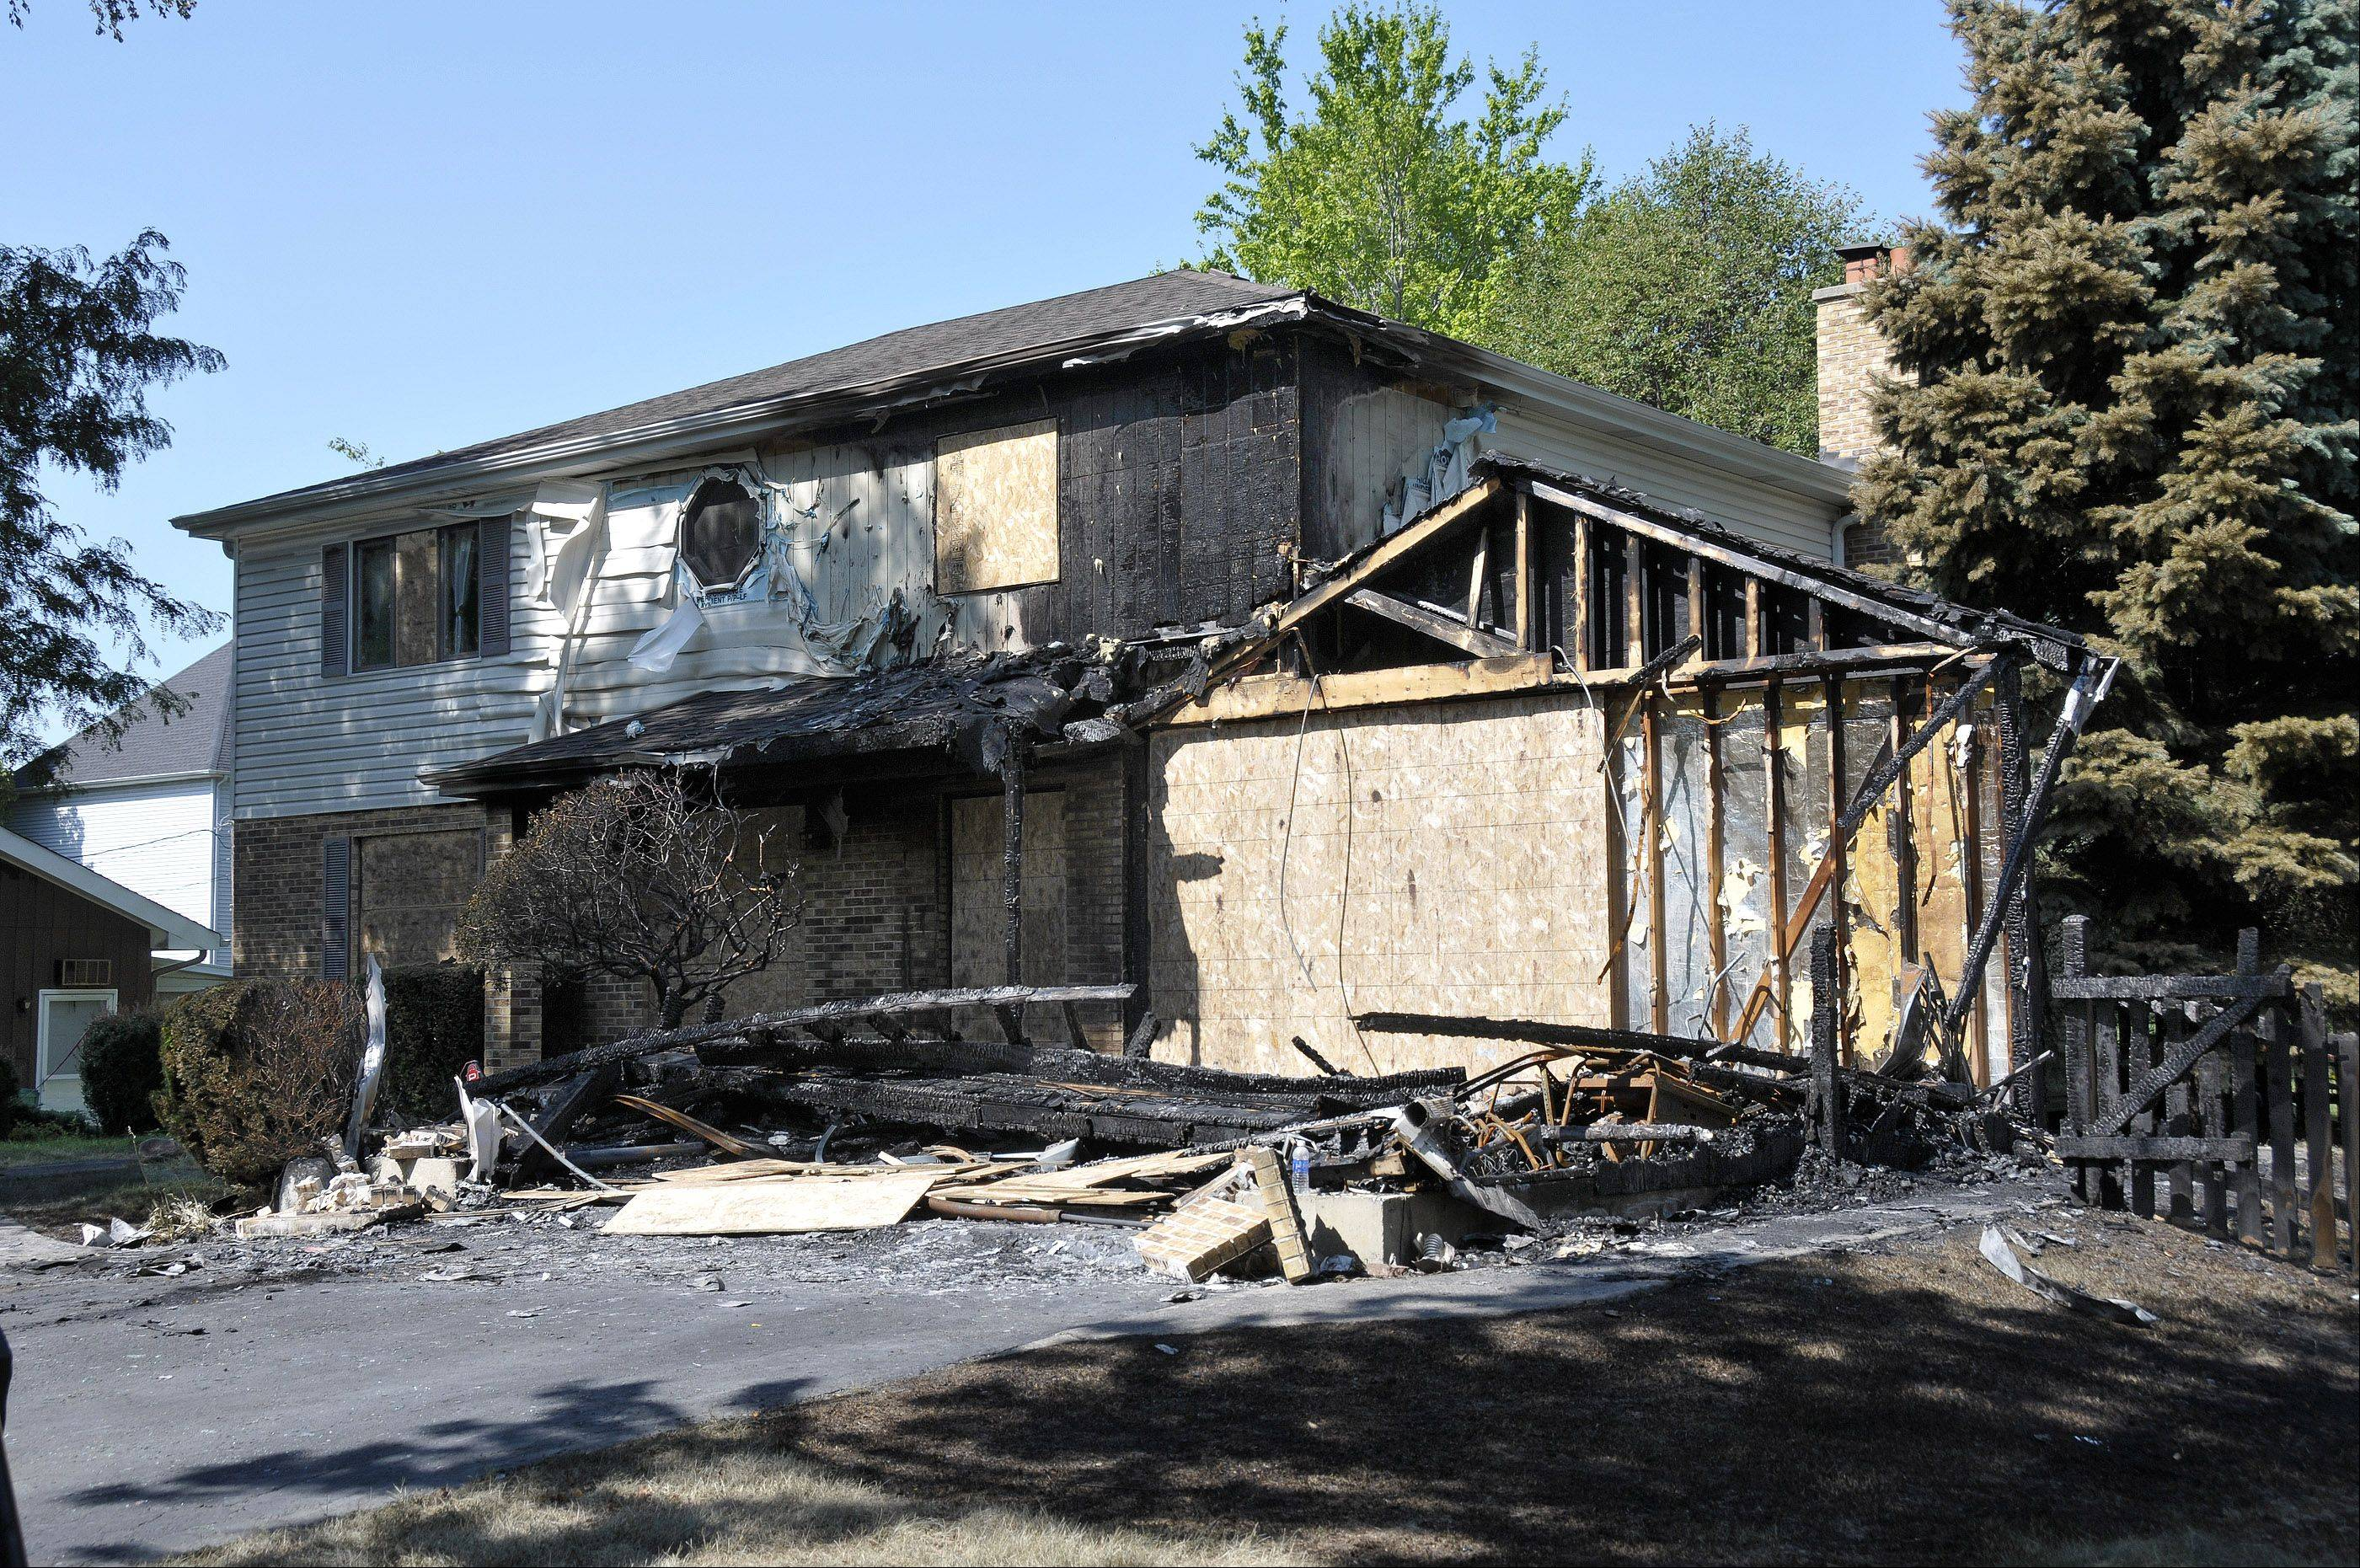 The scene of the fire last month on the 1000 block of South Ahrens Avenue in Lombard that killed Paula Morgan and critically injured Jason Cassidy.